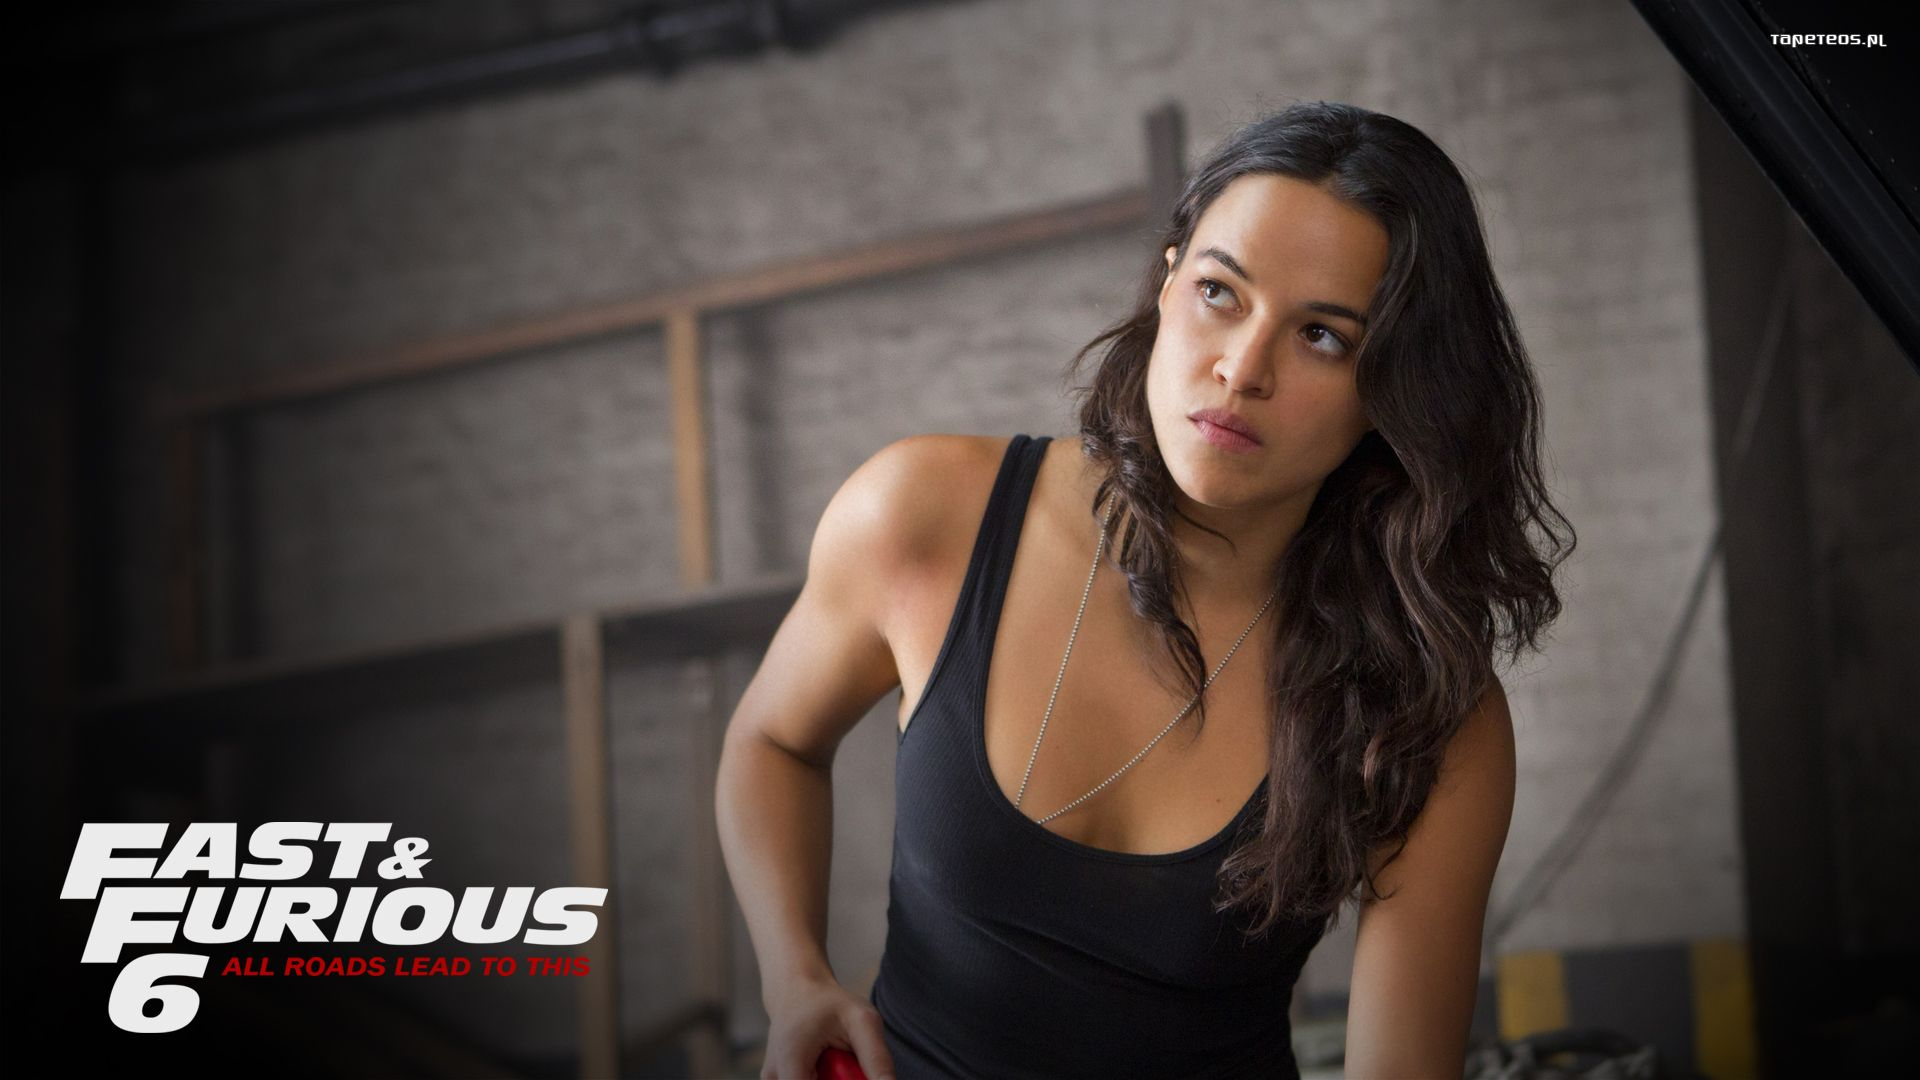 Fast And Furious 8 Wallpaper Hd Szybcy I Wsciekli 6 008 Michelle Rodriguez Letty Tapety